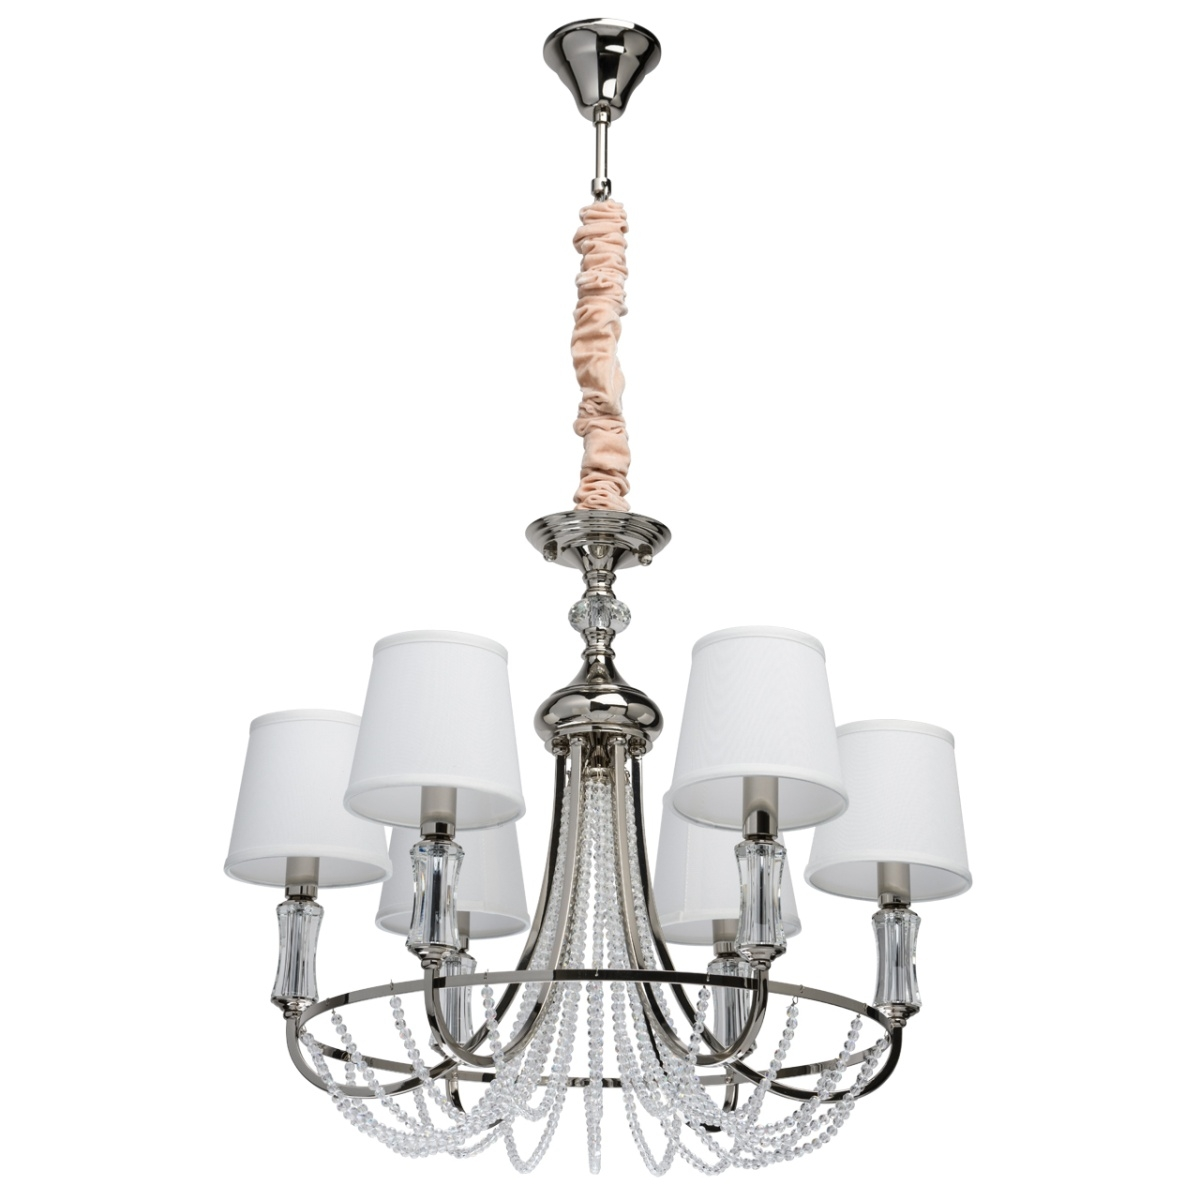 Candelabru MW-Light Elegance Napoli 686010506 imagine